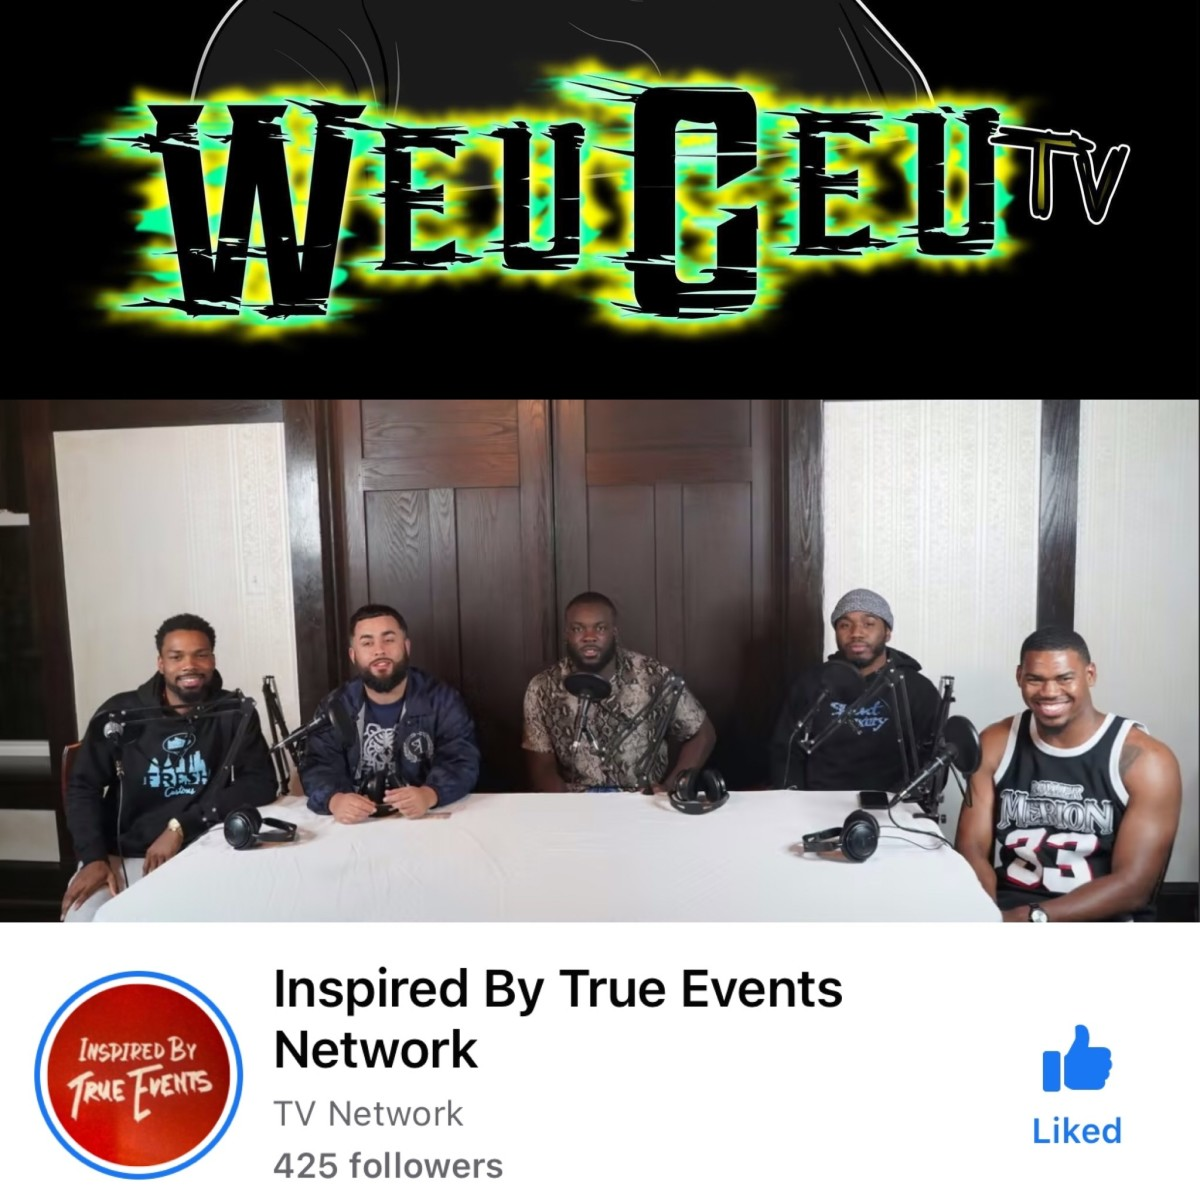 Lawrence's (in the middle of photo) gaming channel has 1.3k followers and Inspired by true events has 425 followers on facebook and growing on different social media platforms.